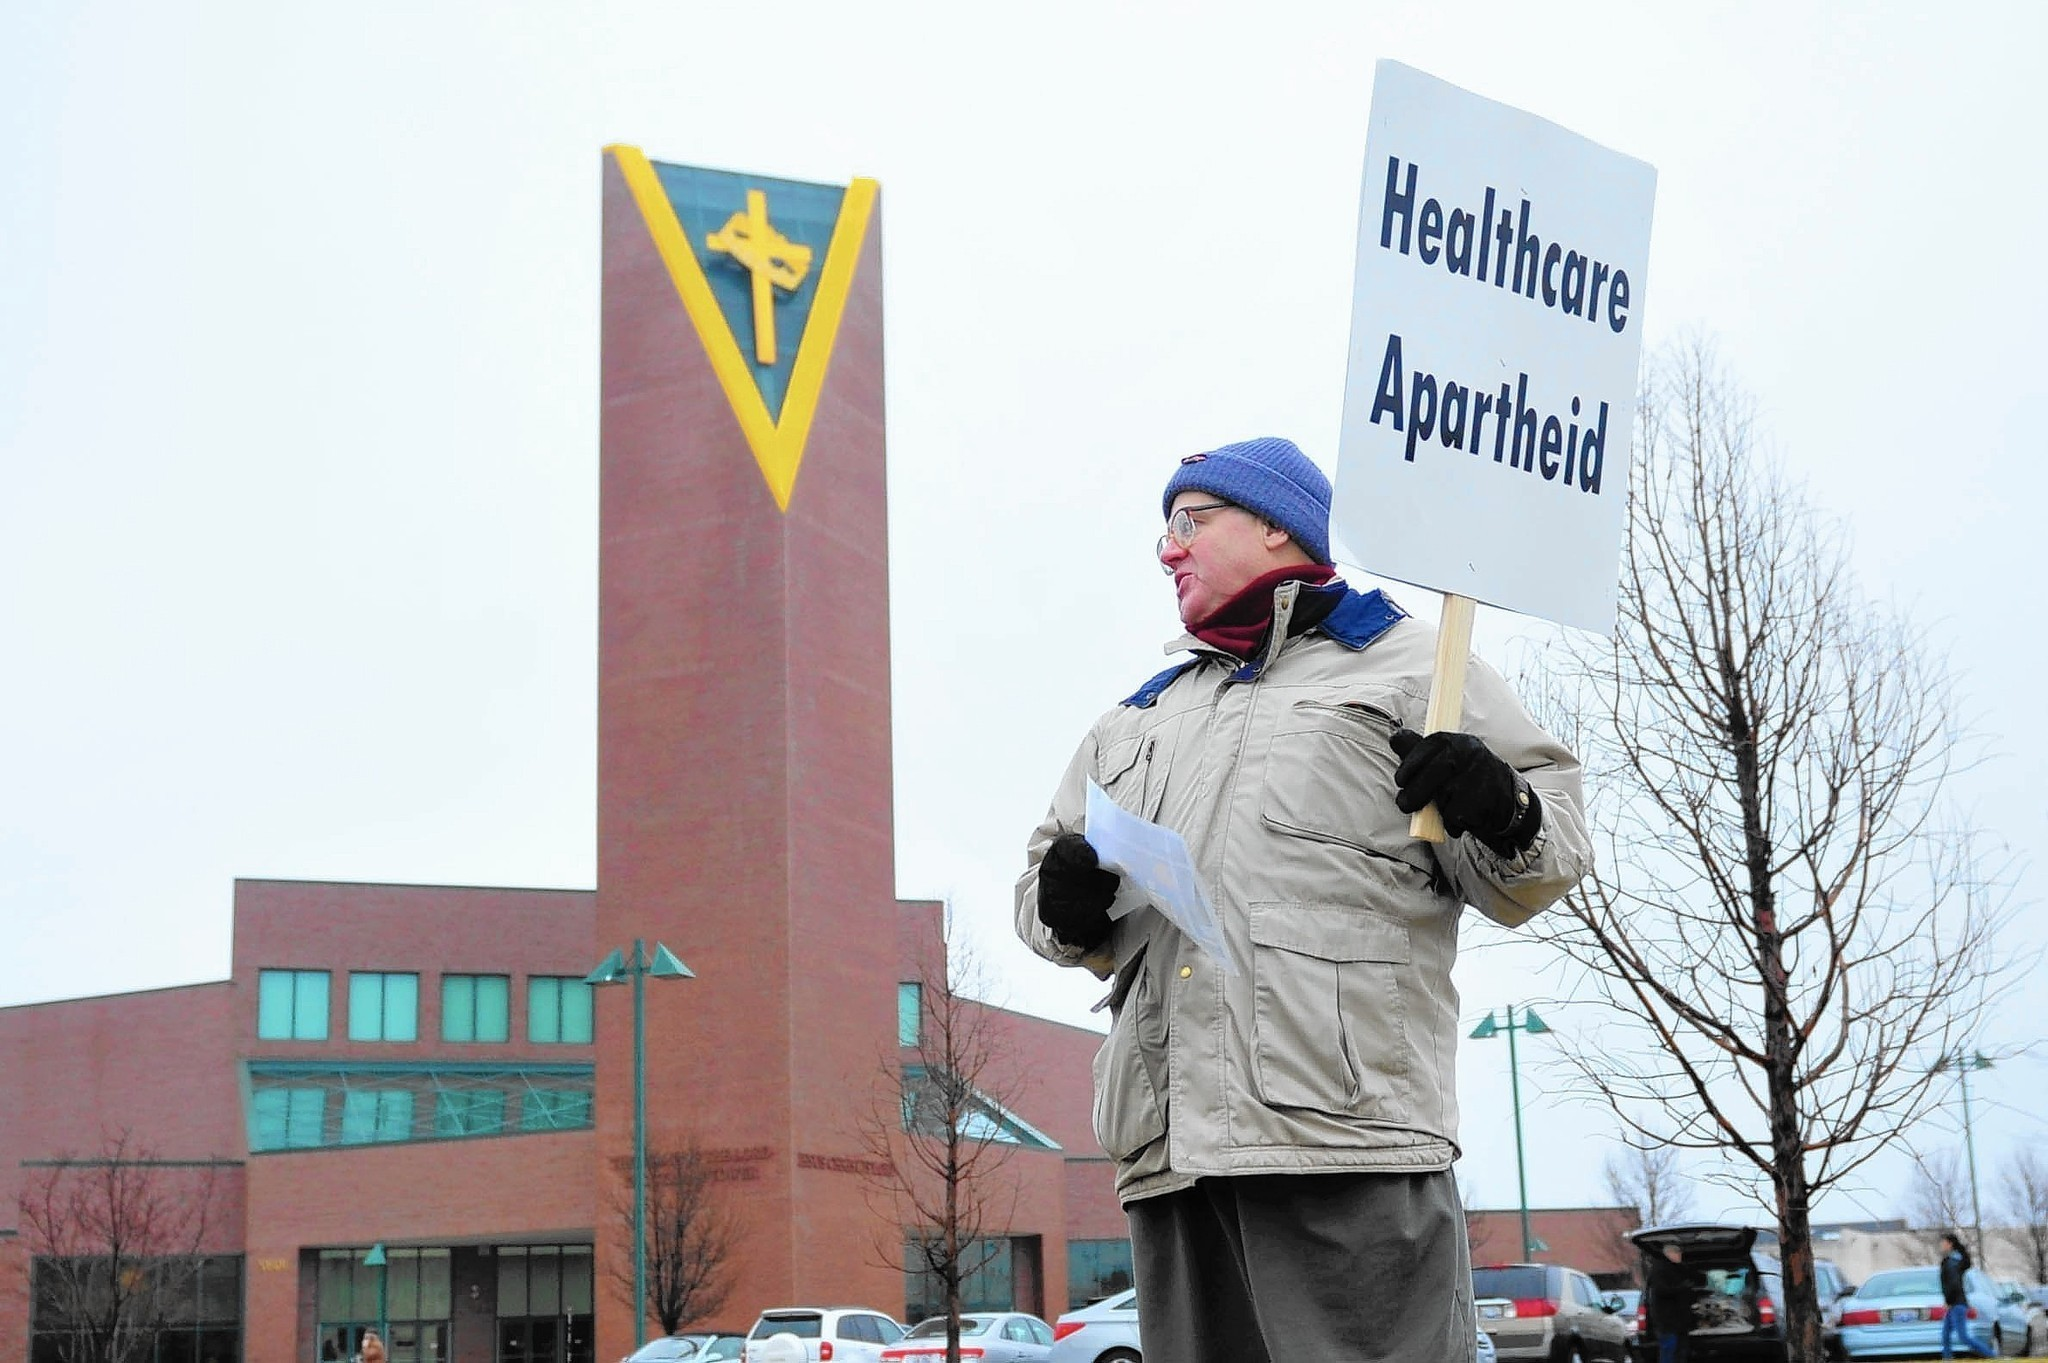 Hospital s plans to shift er services from chicago heights to olympia fields criticized daily southtown